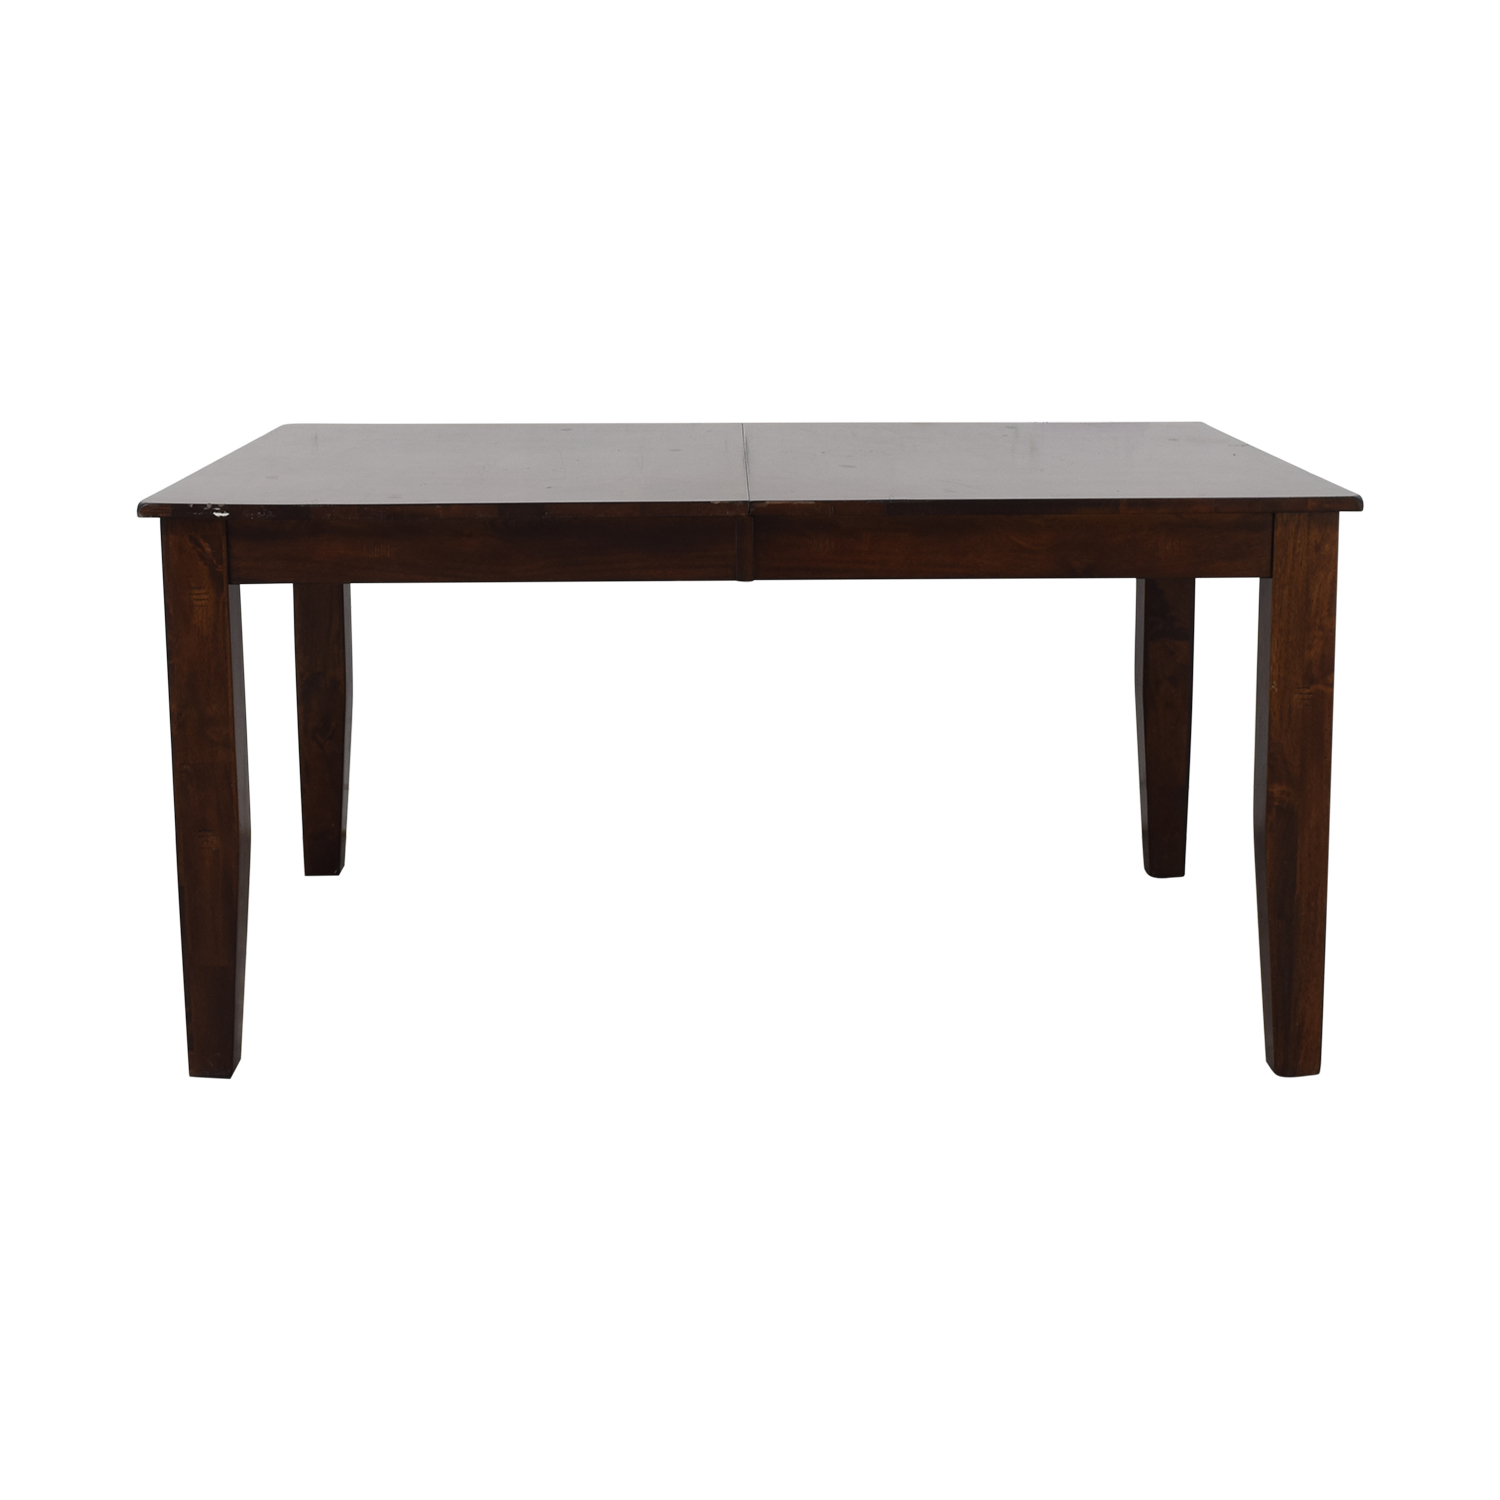 Raymour & Flanigan Raymour & Flanigan Kona Dining Table with Leaf Brown